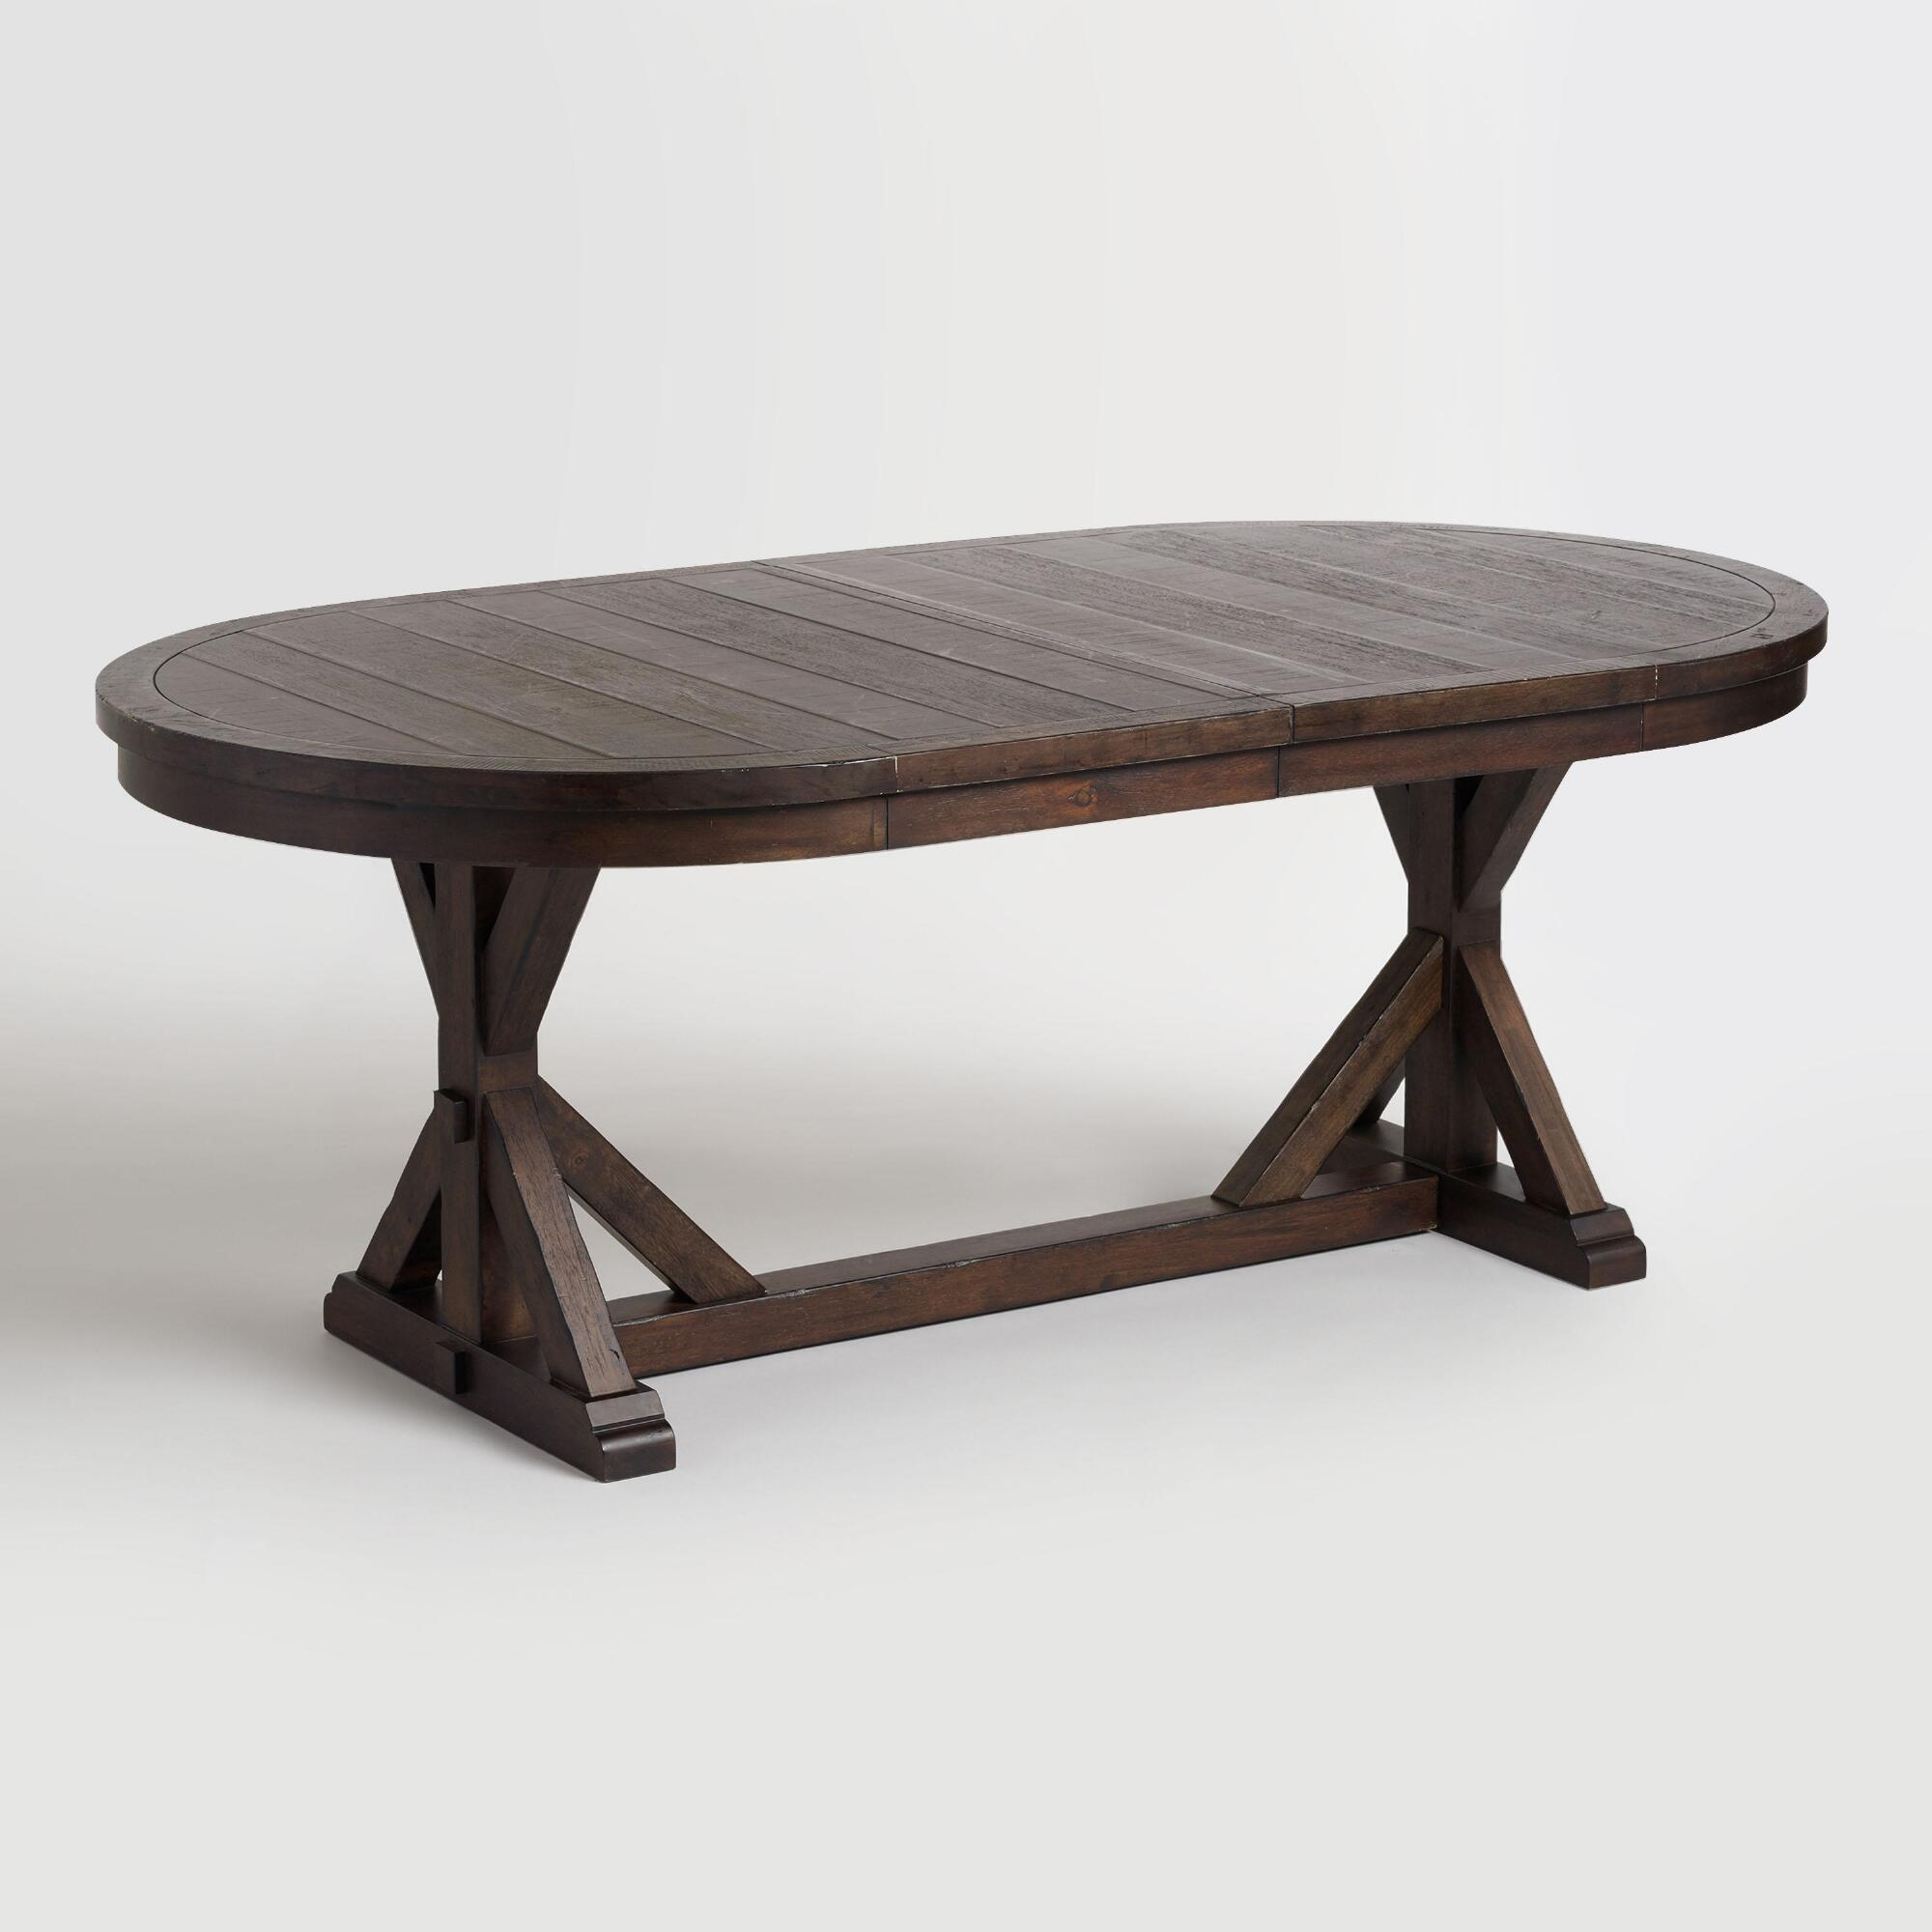 Rustic brown oval wood brooklynn extension dining table Oval dining table